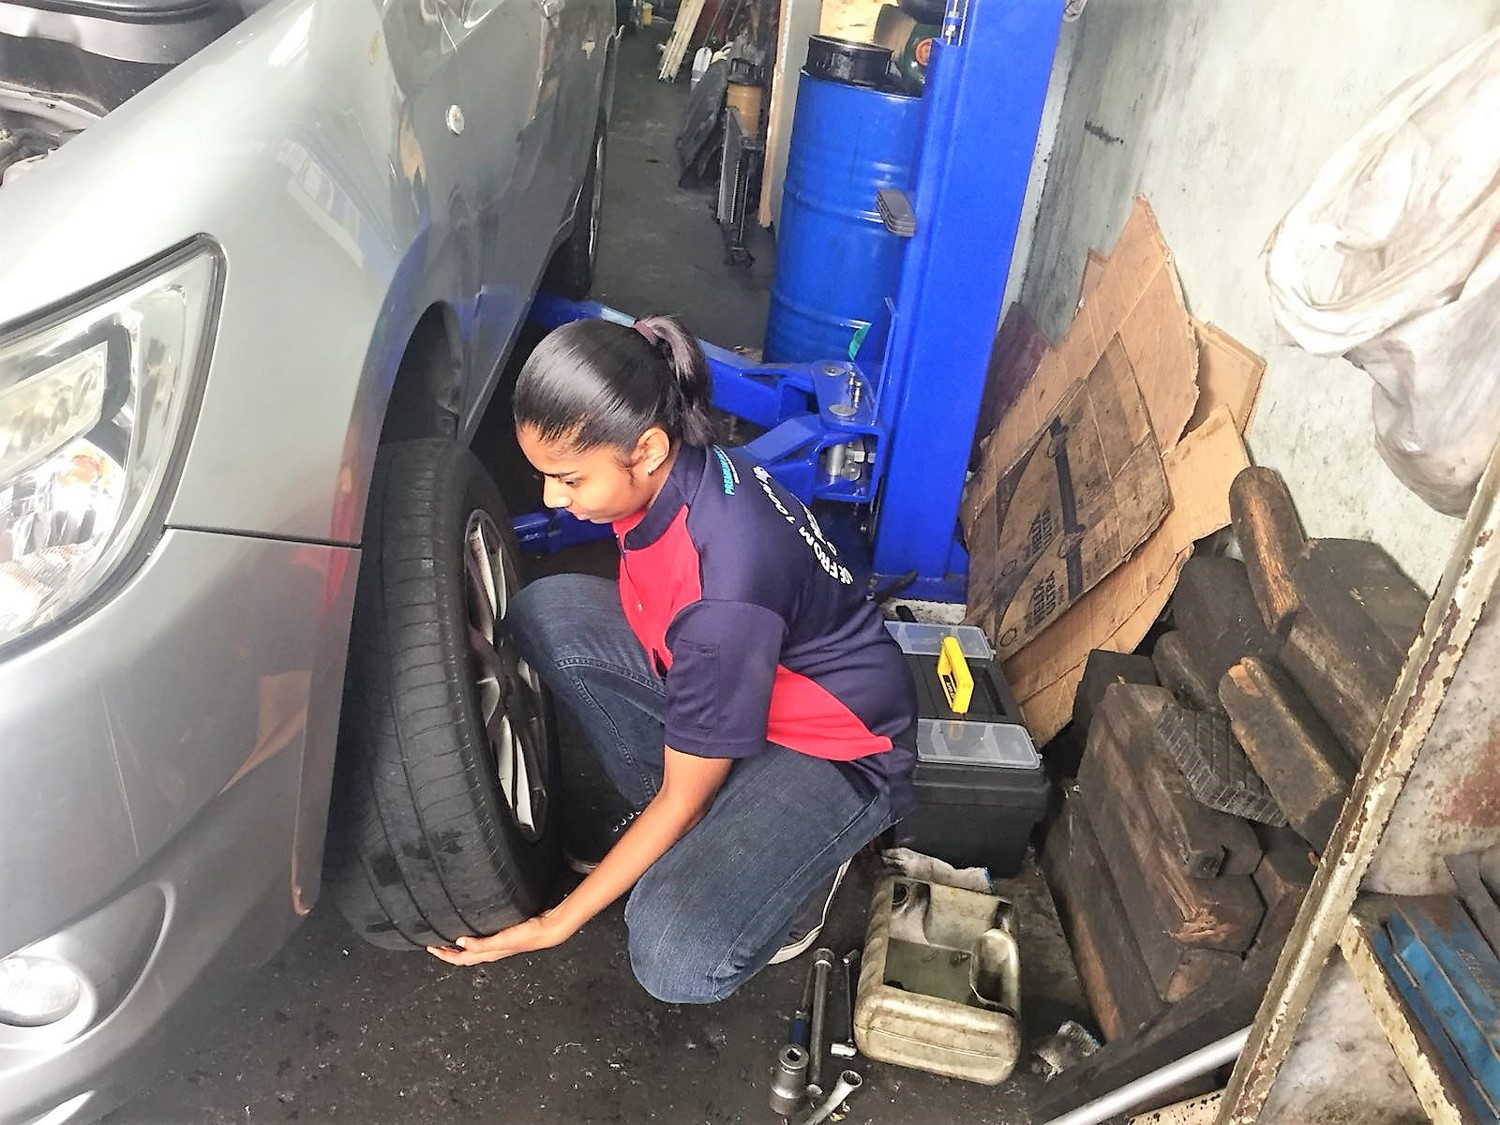 replace-a-worn-out-tyre.jpg